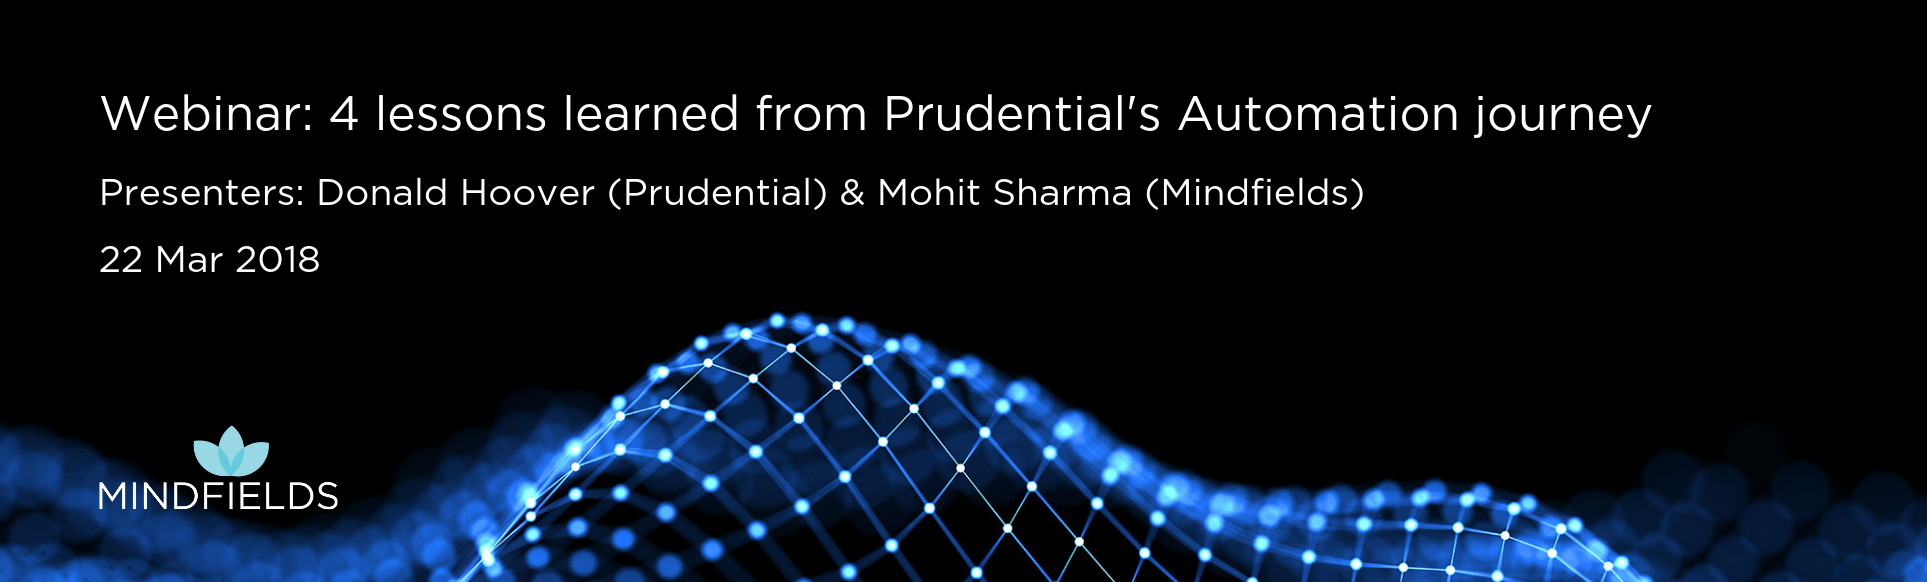 Webinar - 4key lessons Prudential LP